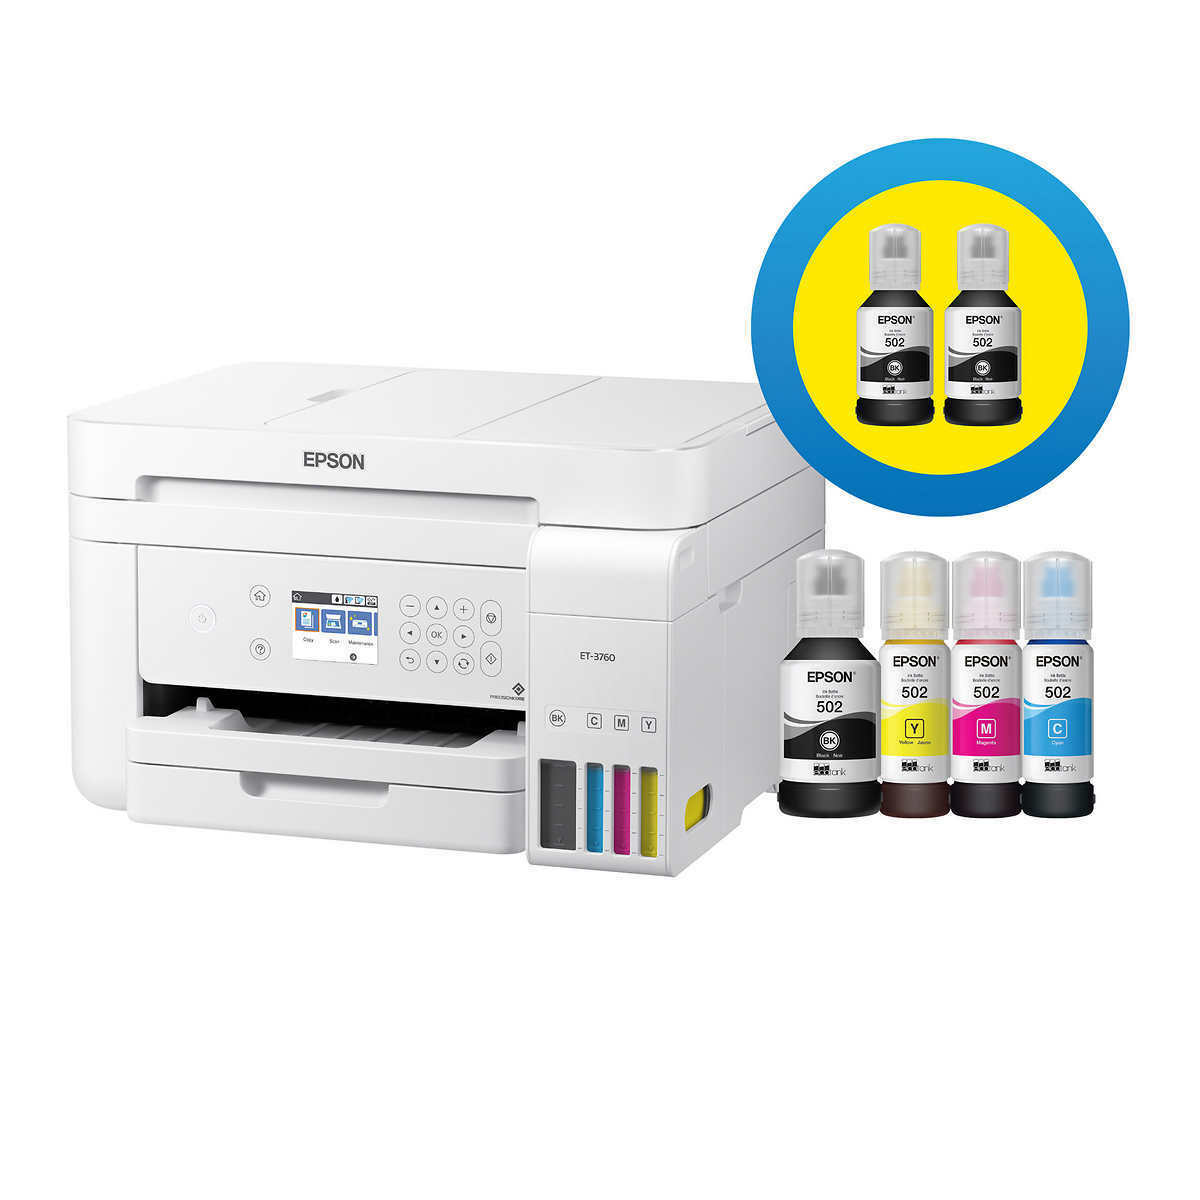 Epson WorkForce ET-3750 Special Edition EcoTank All-in-One S